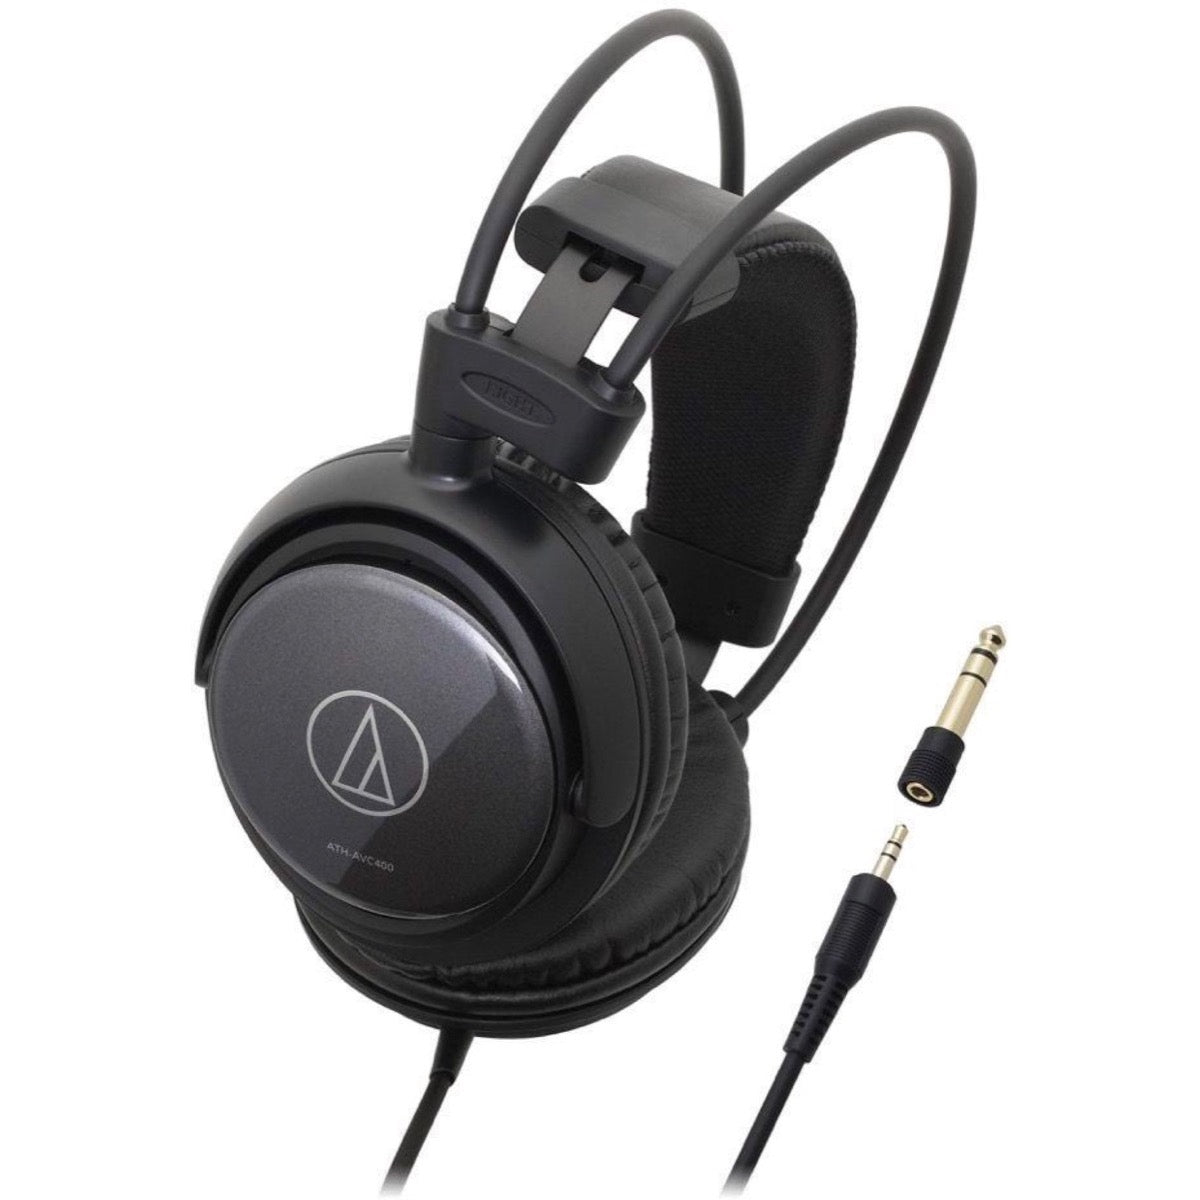 Audio-Technica ATH-AVC400 Closed-Back Headphones